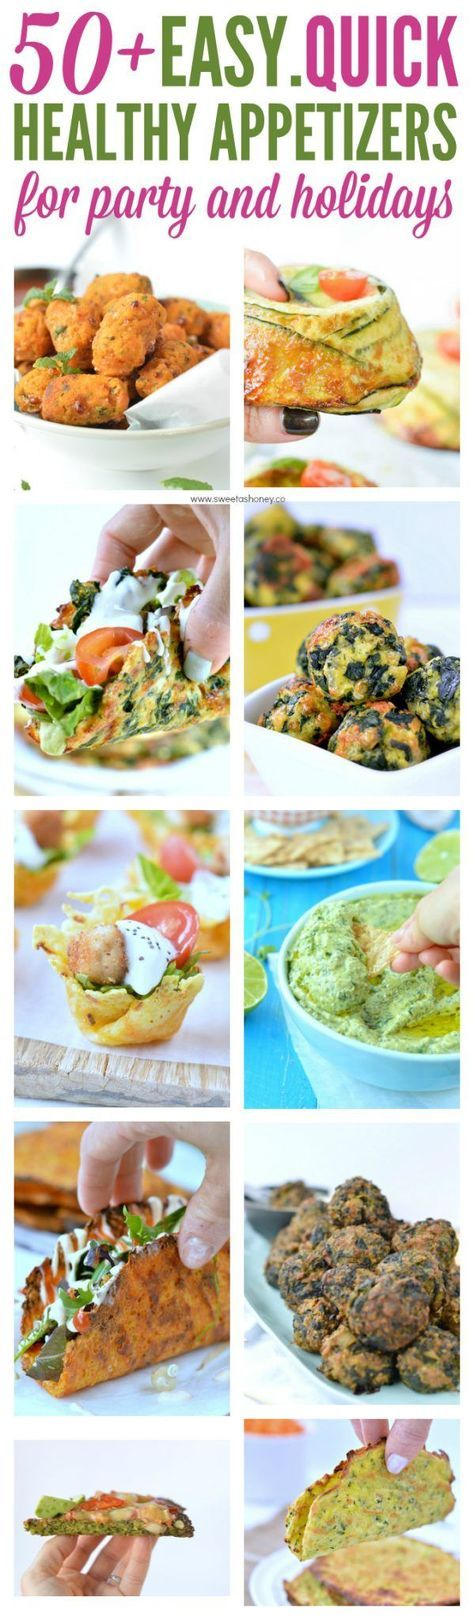 Easy Healthy Appetizers for Party and Holidays to feed a crowd. Perfect for Christmas and Thanksgiving. #christmasappetizers #birthdayfood #partyfood